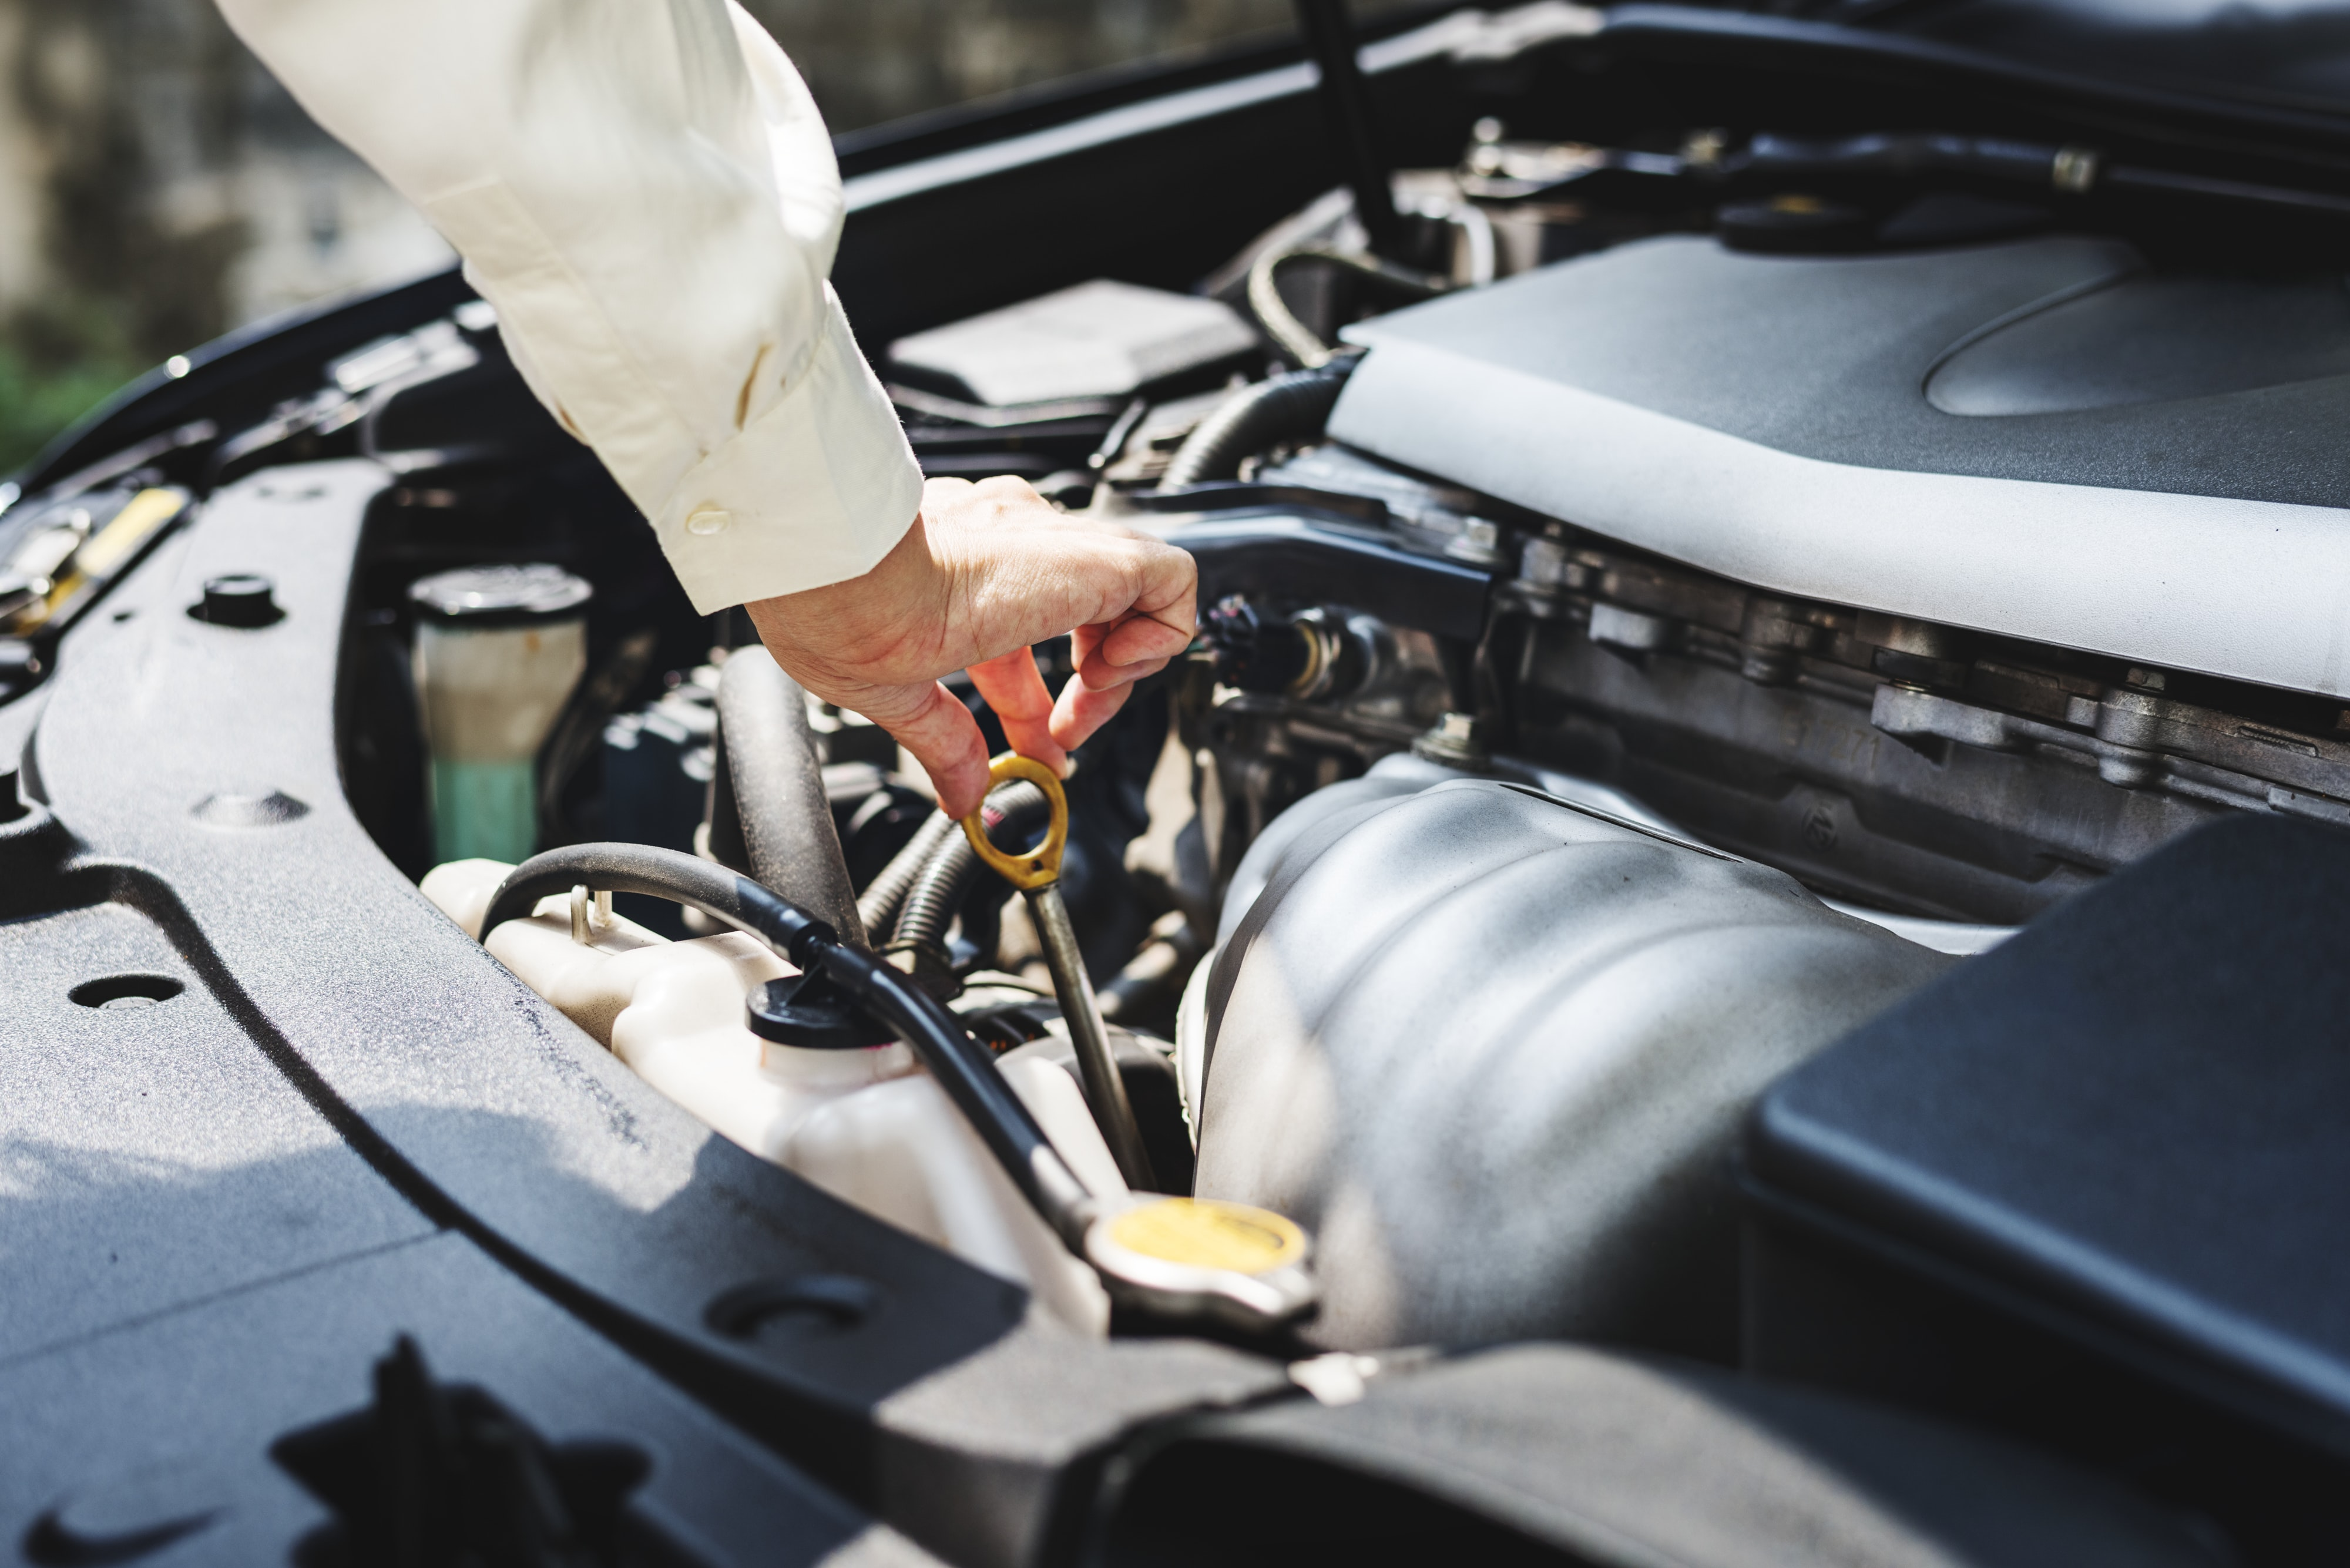 person holding round brown vehicle engine part